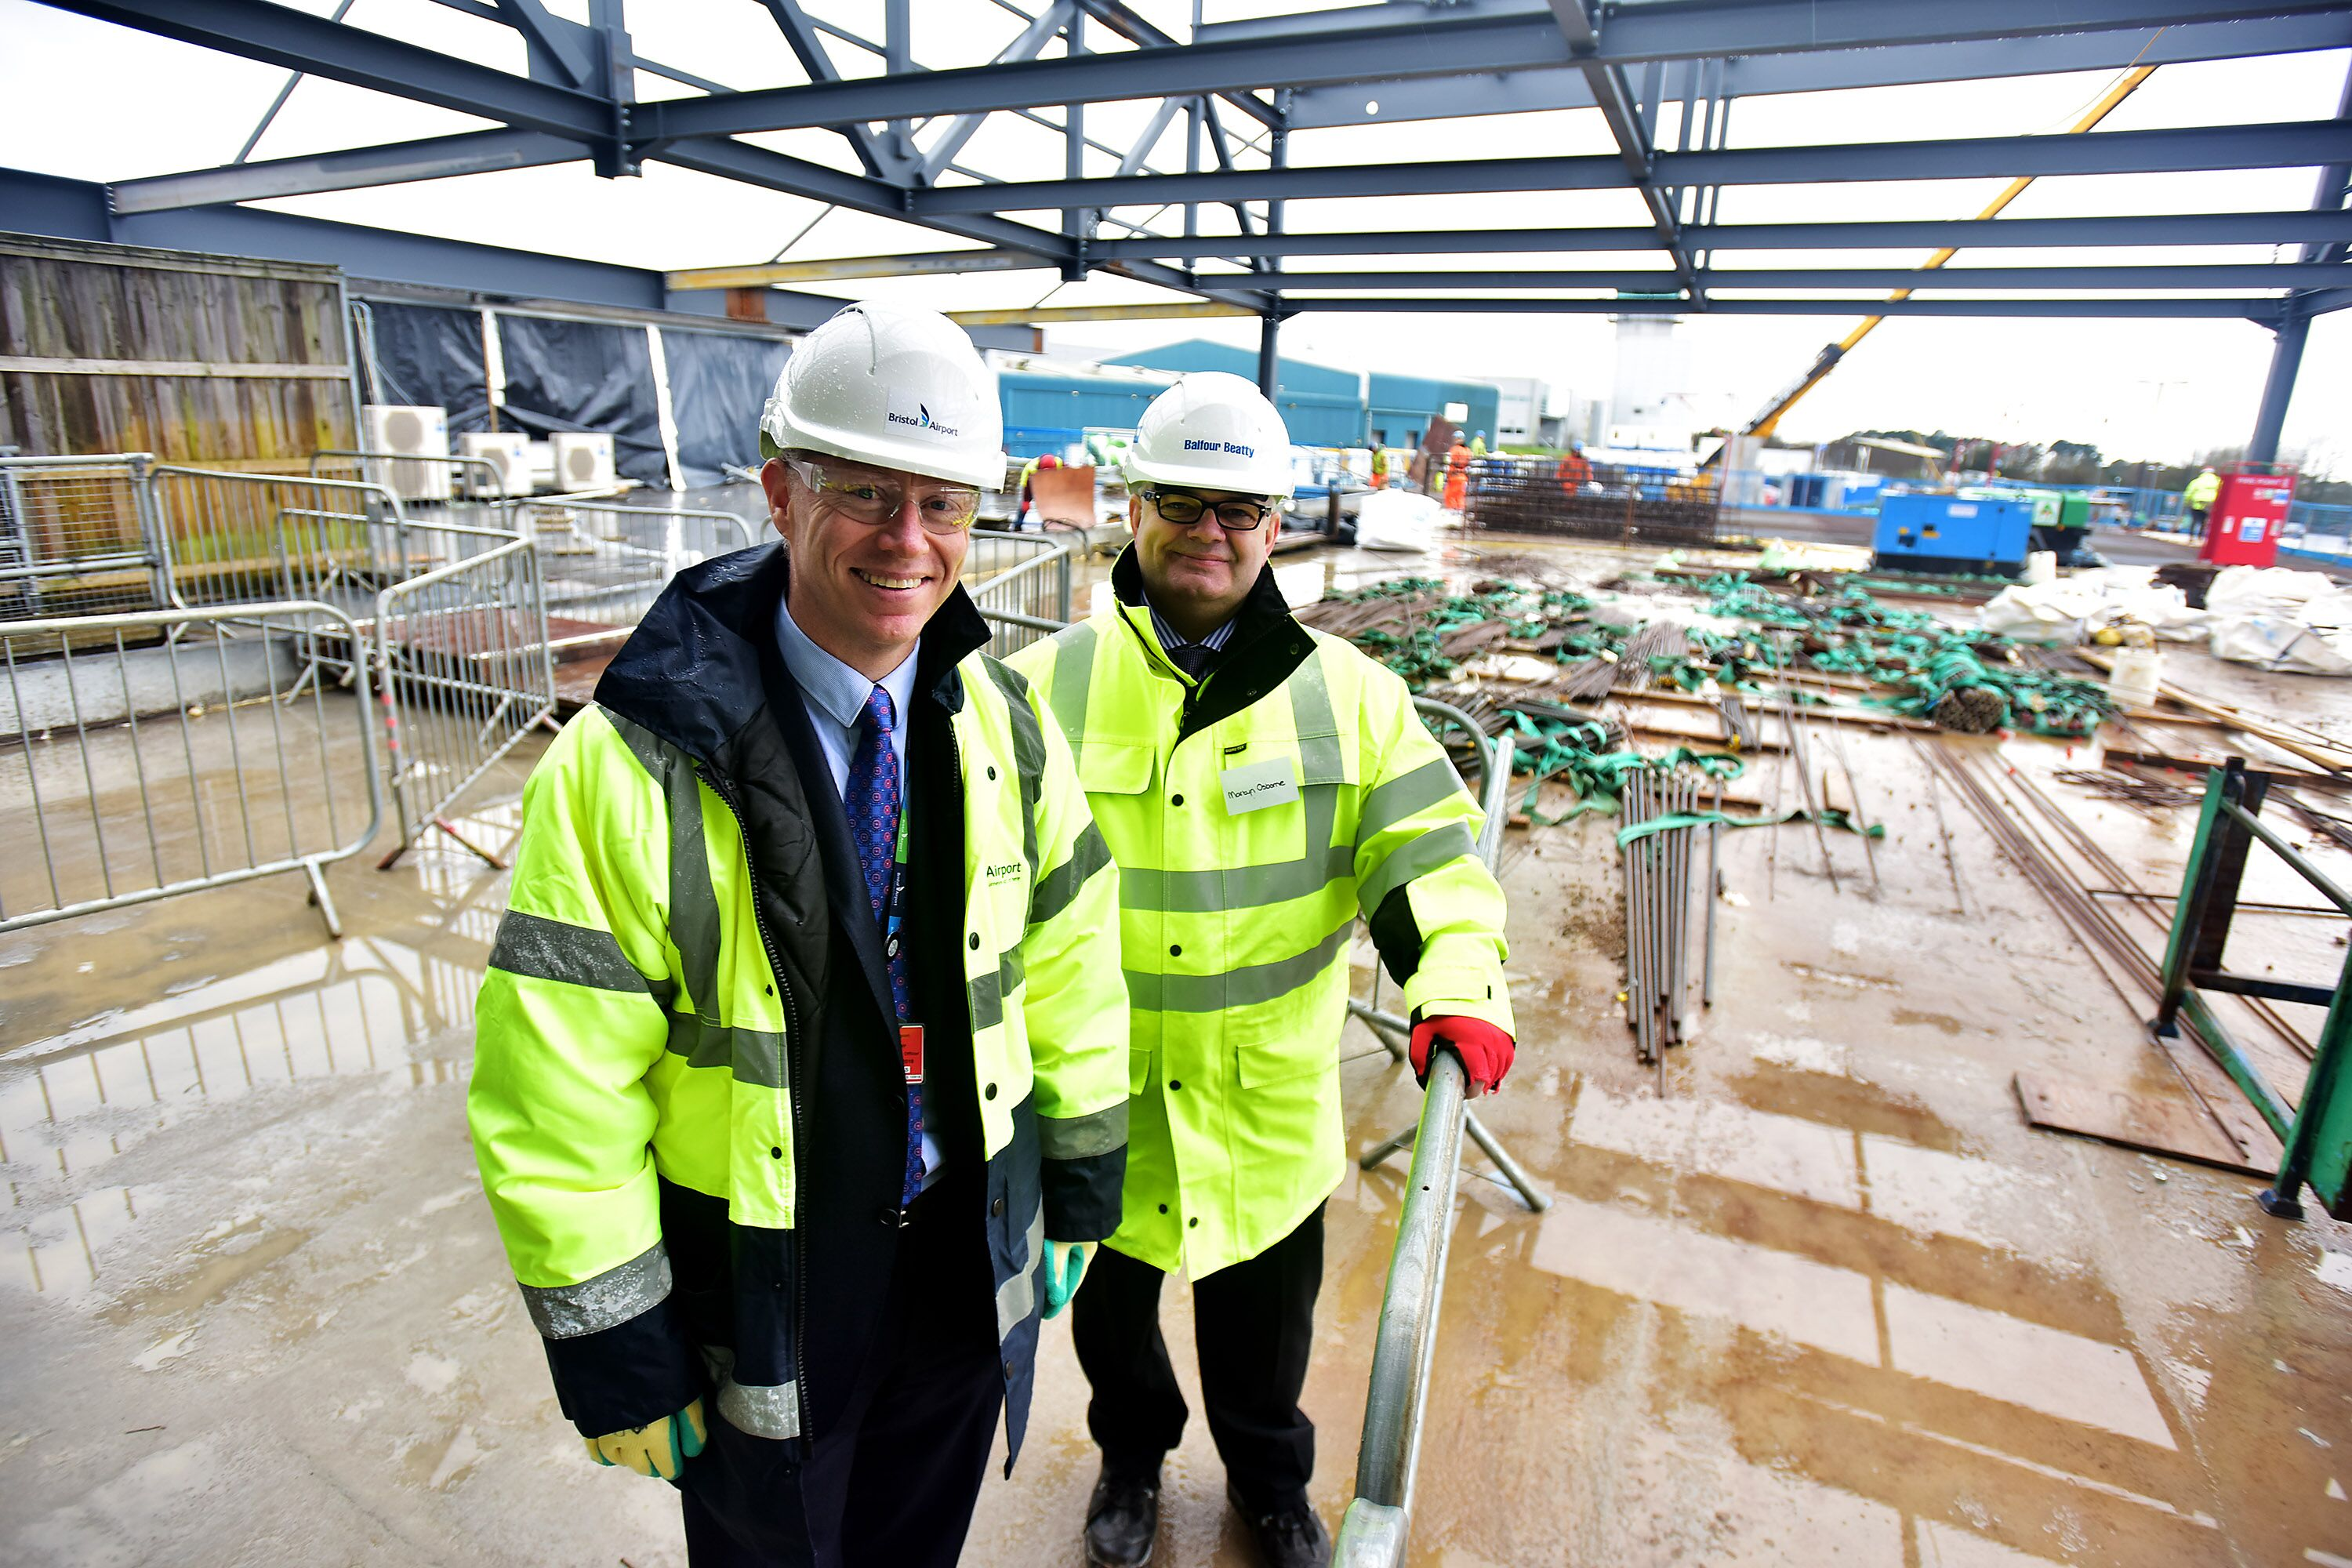 Building work on Bristol Airport's £24m terminal extension reaches new high